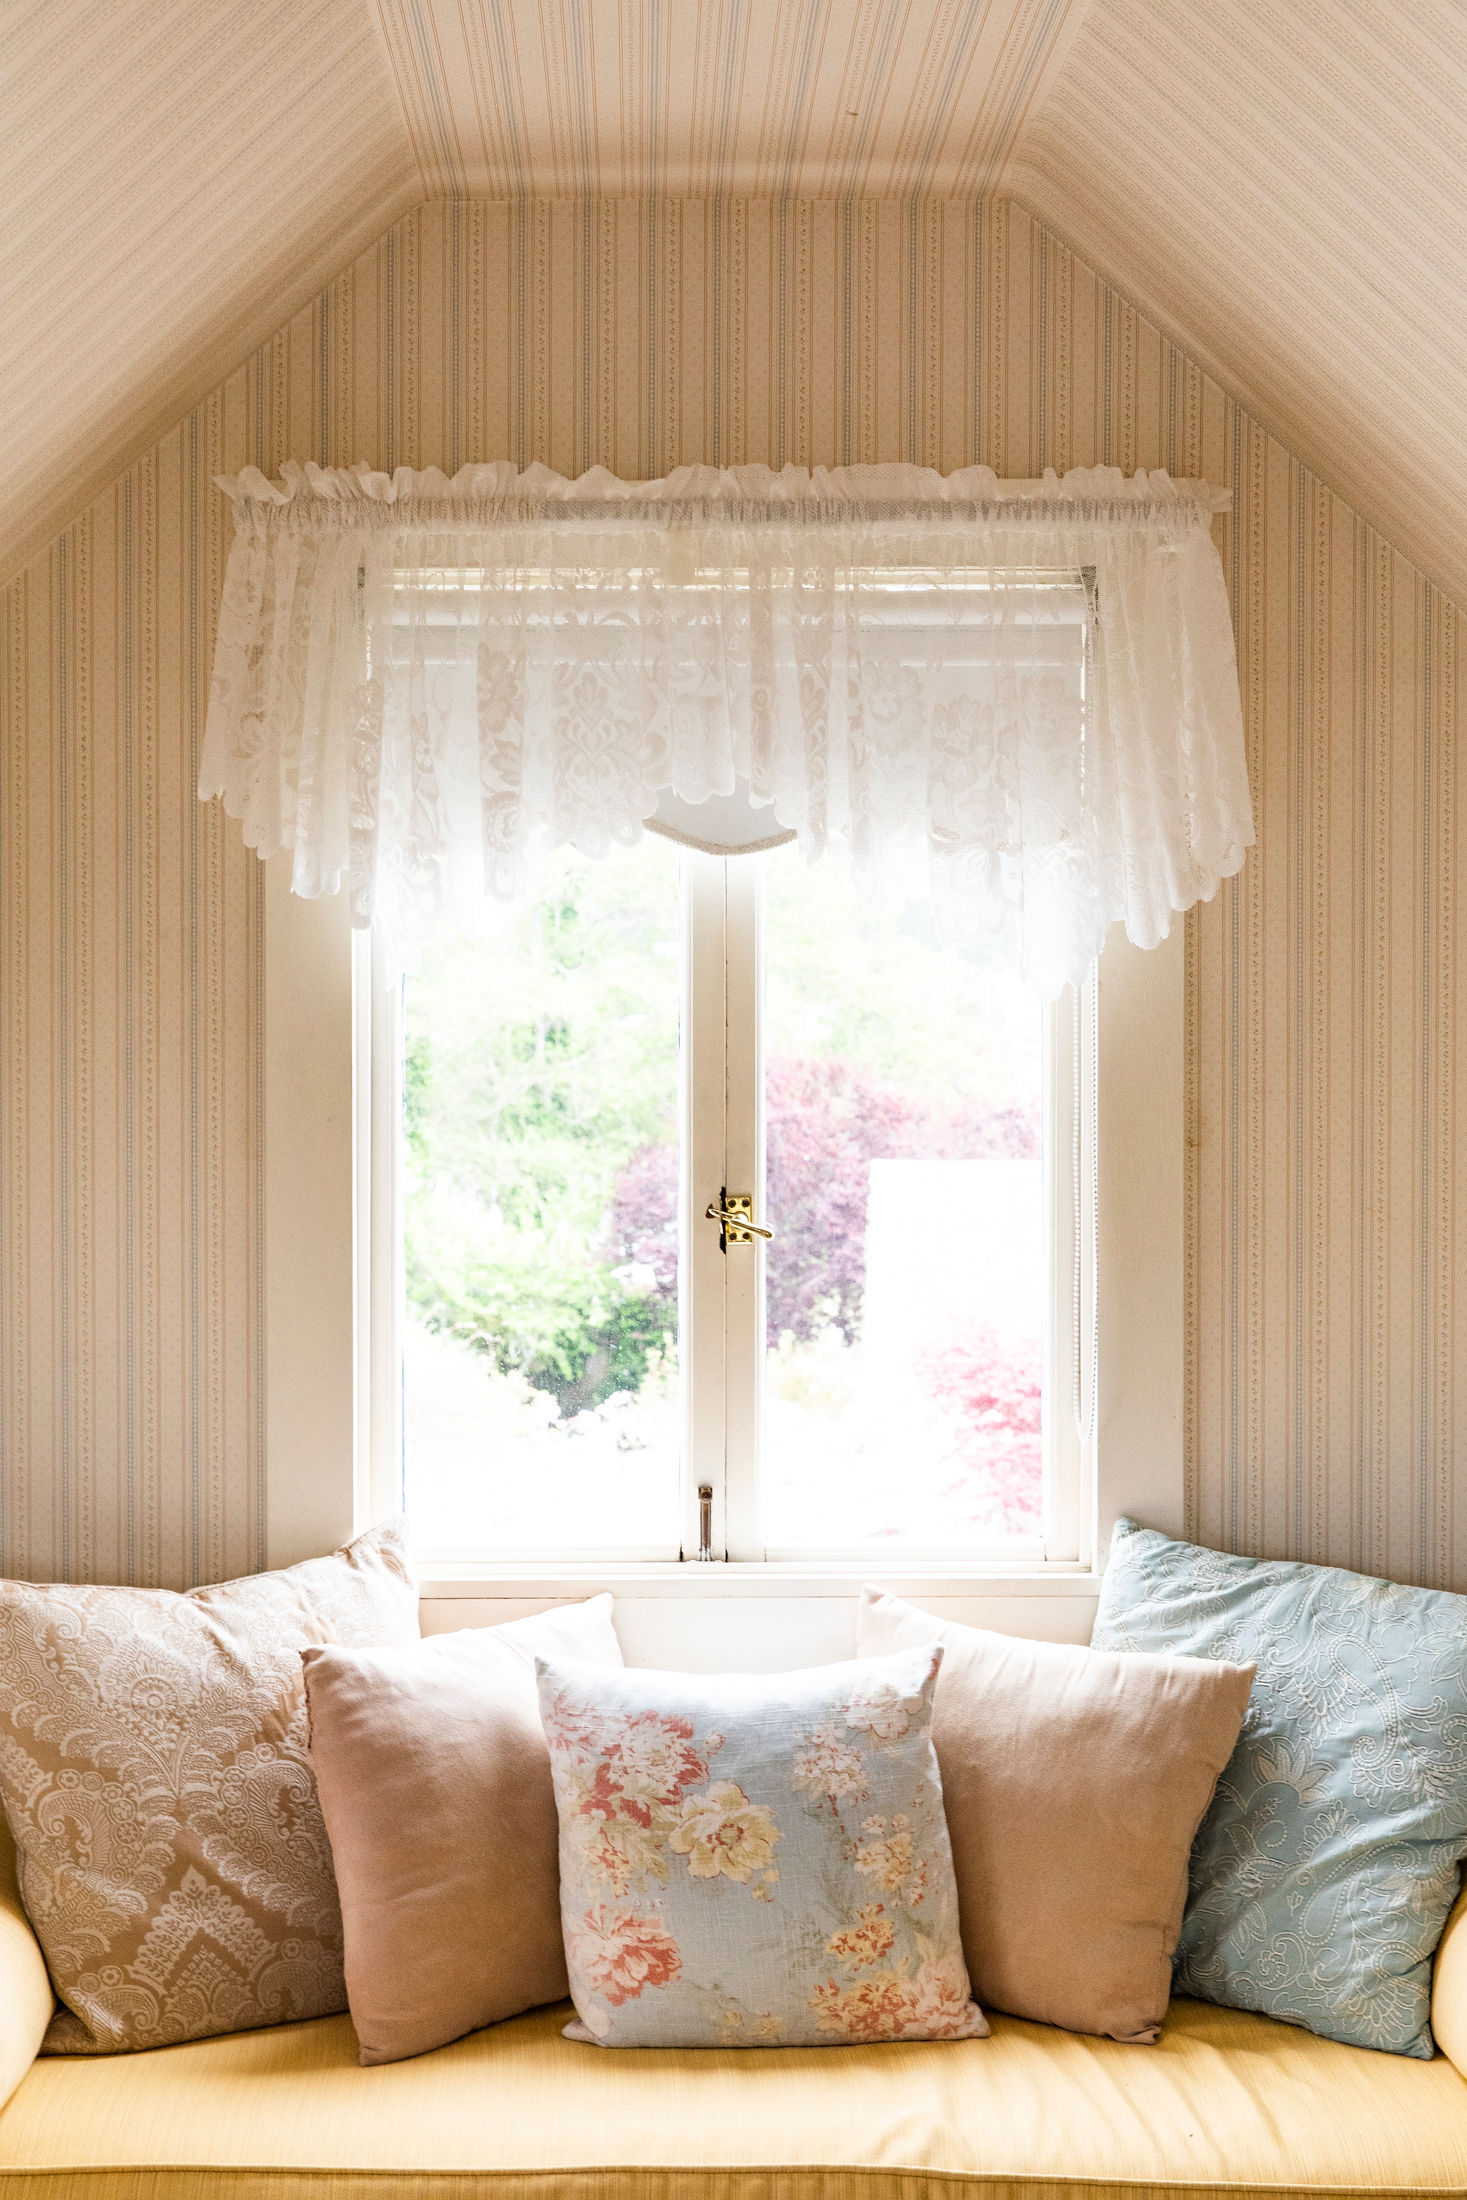 Cozy rooms with antique furnishings and vintage details welcome travelers from around the world to Mendocino's Bed & Breakfast, Headlands Inn